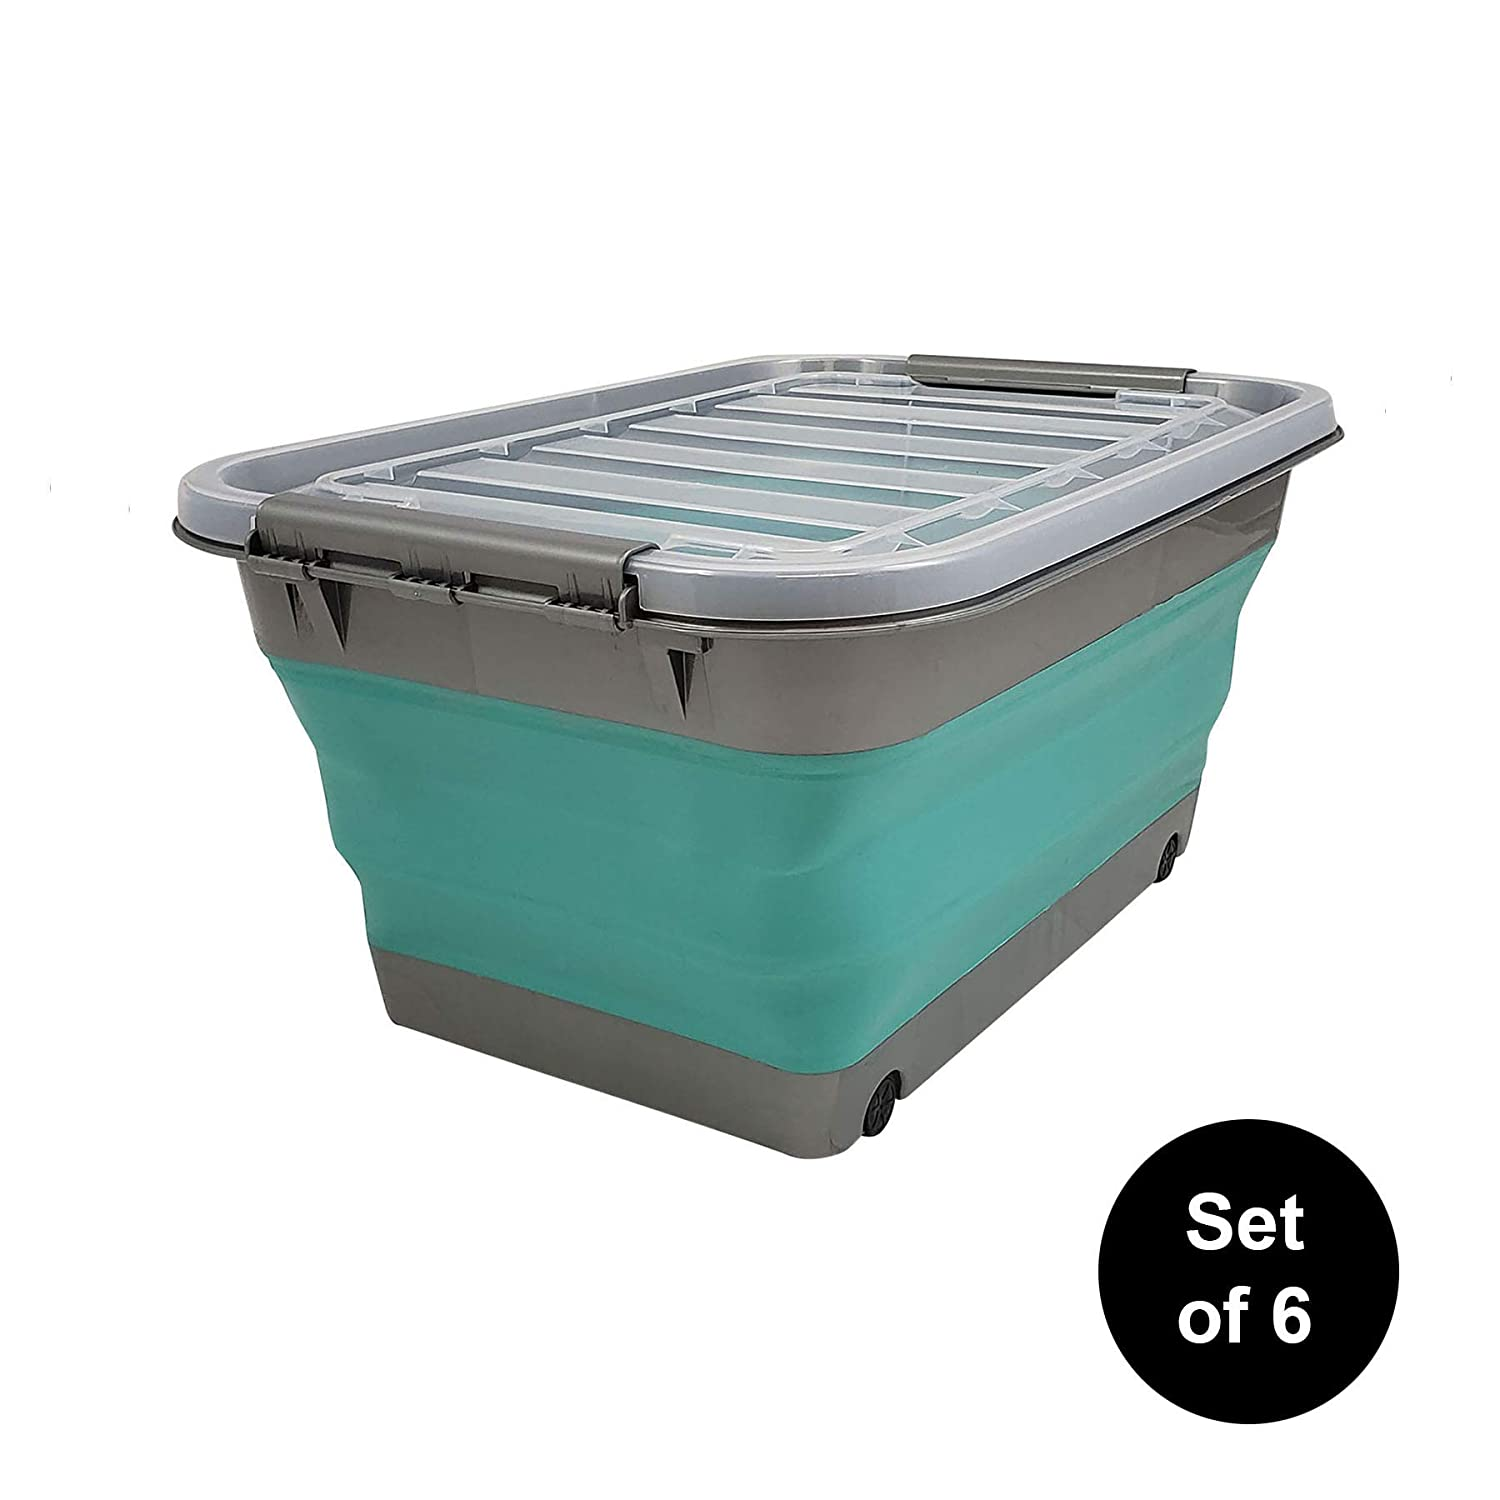 HOMZ Store N Stow(TM) 8 Gallon Latching Container with Wheels, Grey and Teal Base with Clear Lid Collapsible Storage, Set of 6, 6 Sets